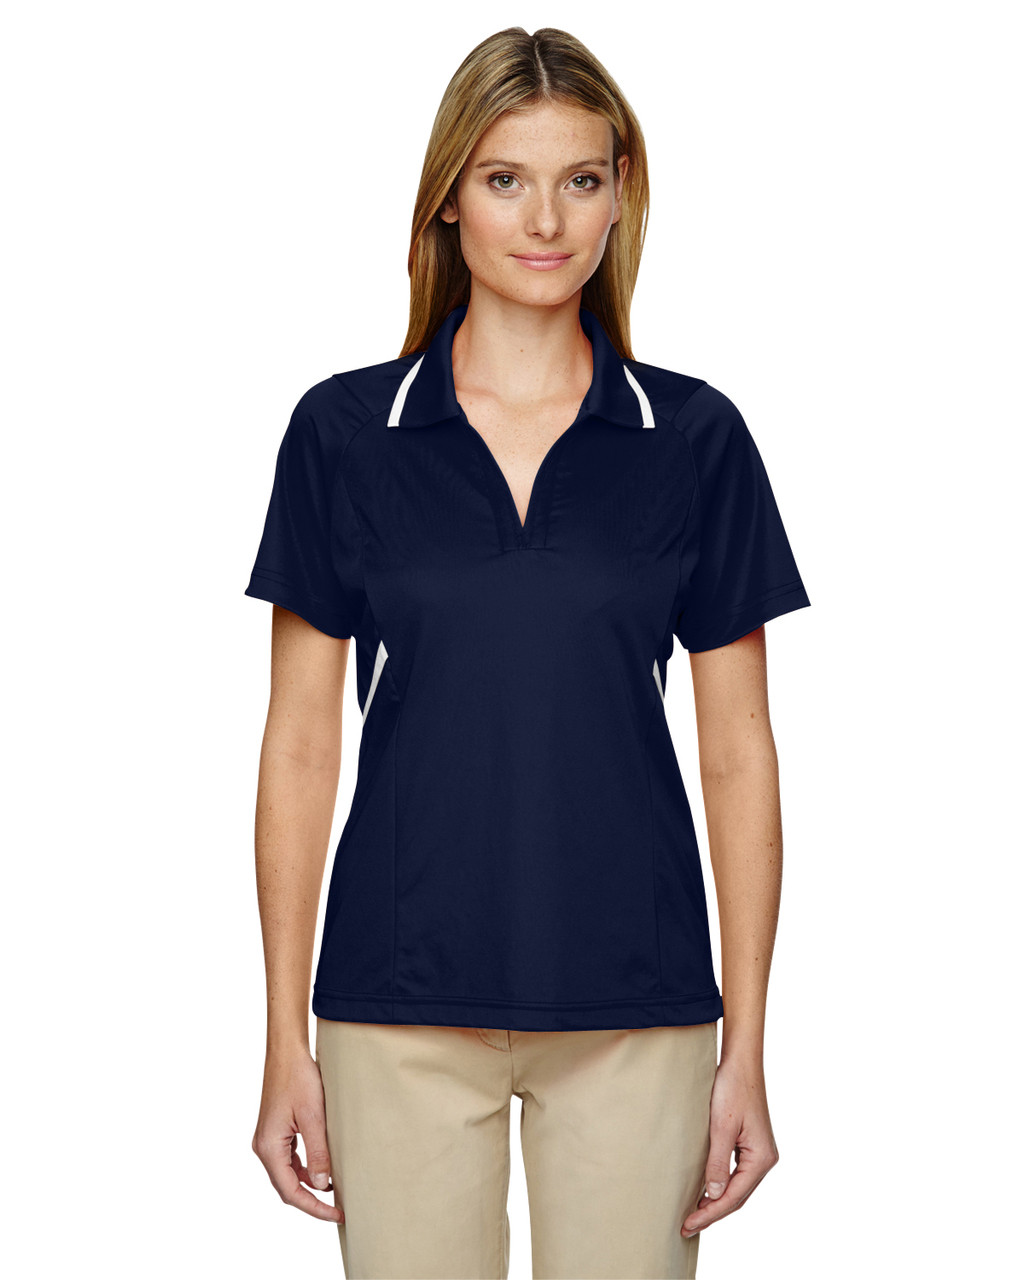 Classic Navy - 75118 Ash City - Extreme Eperformance Propel Interlock Polo Shirt with Contrast Tape